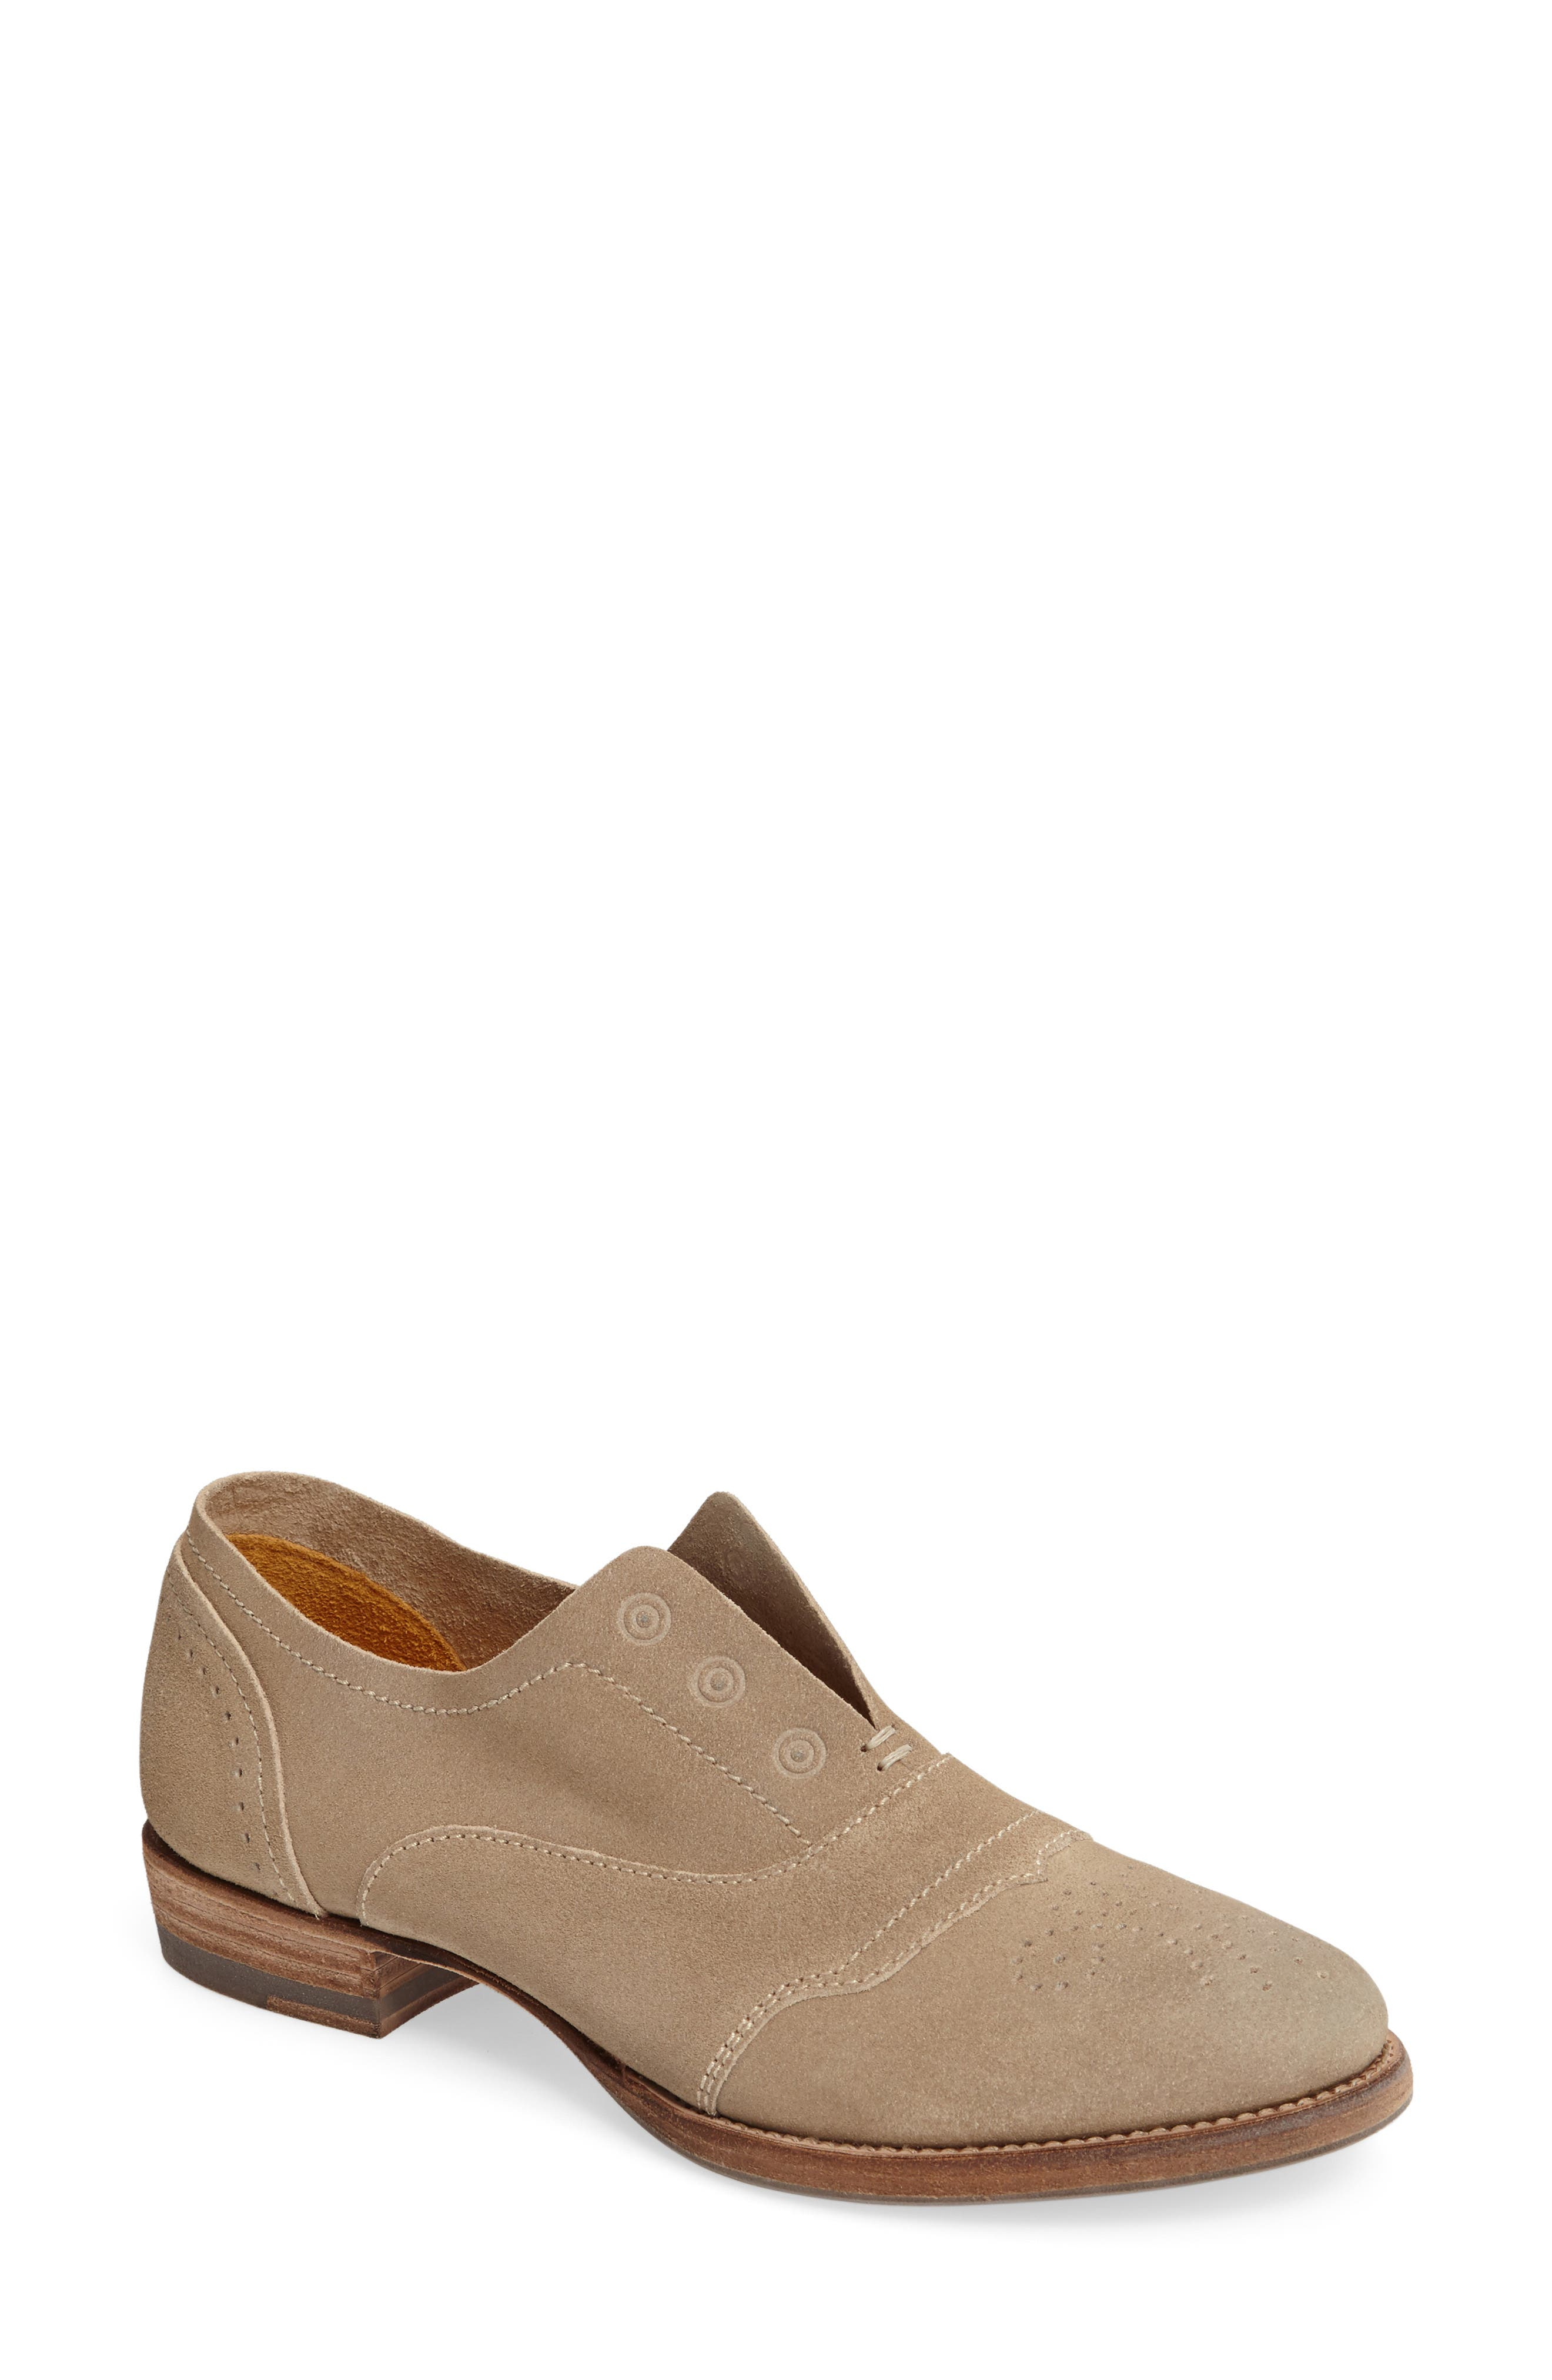 Alternate Image 1 Selected - Blackstone 'HL55' Slip-On Oxford (Women)